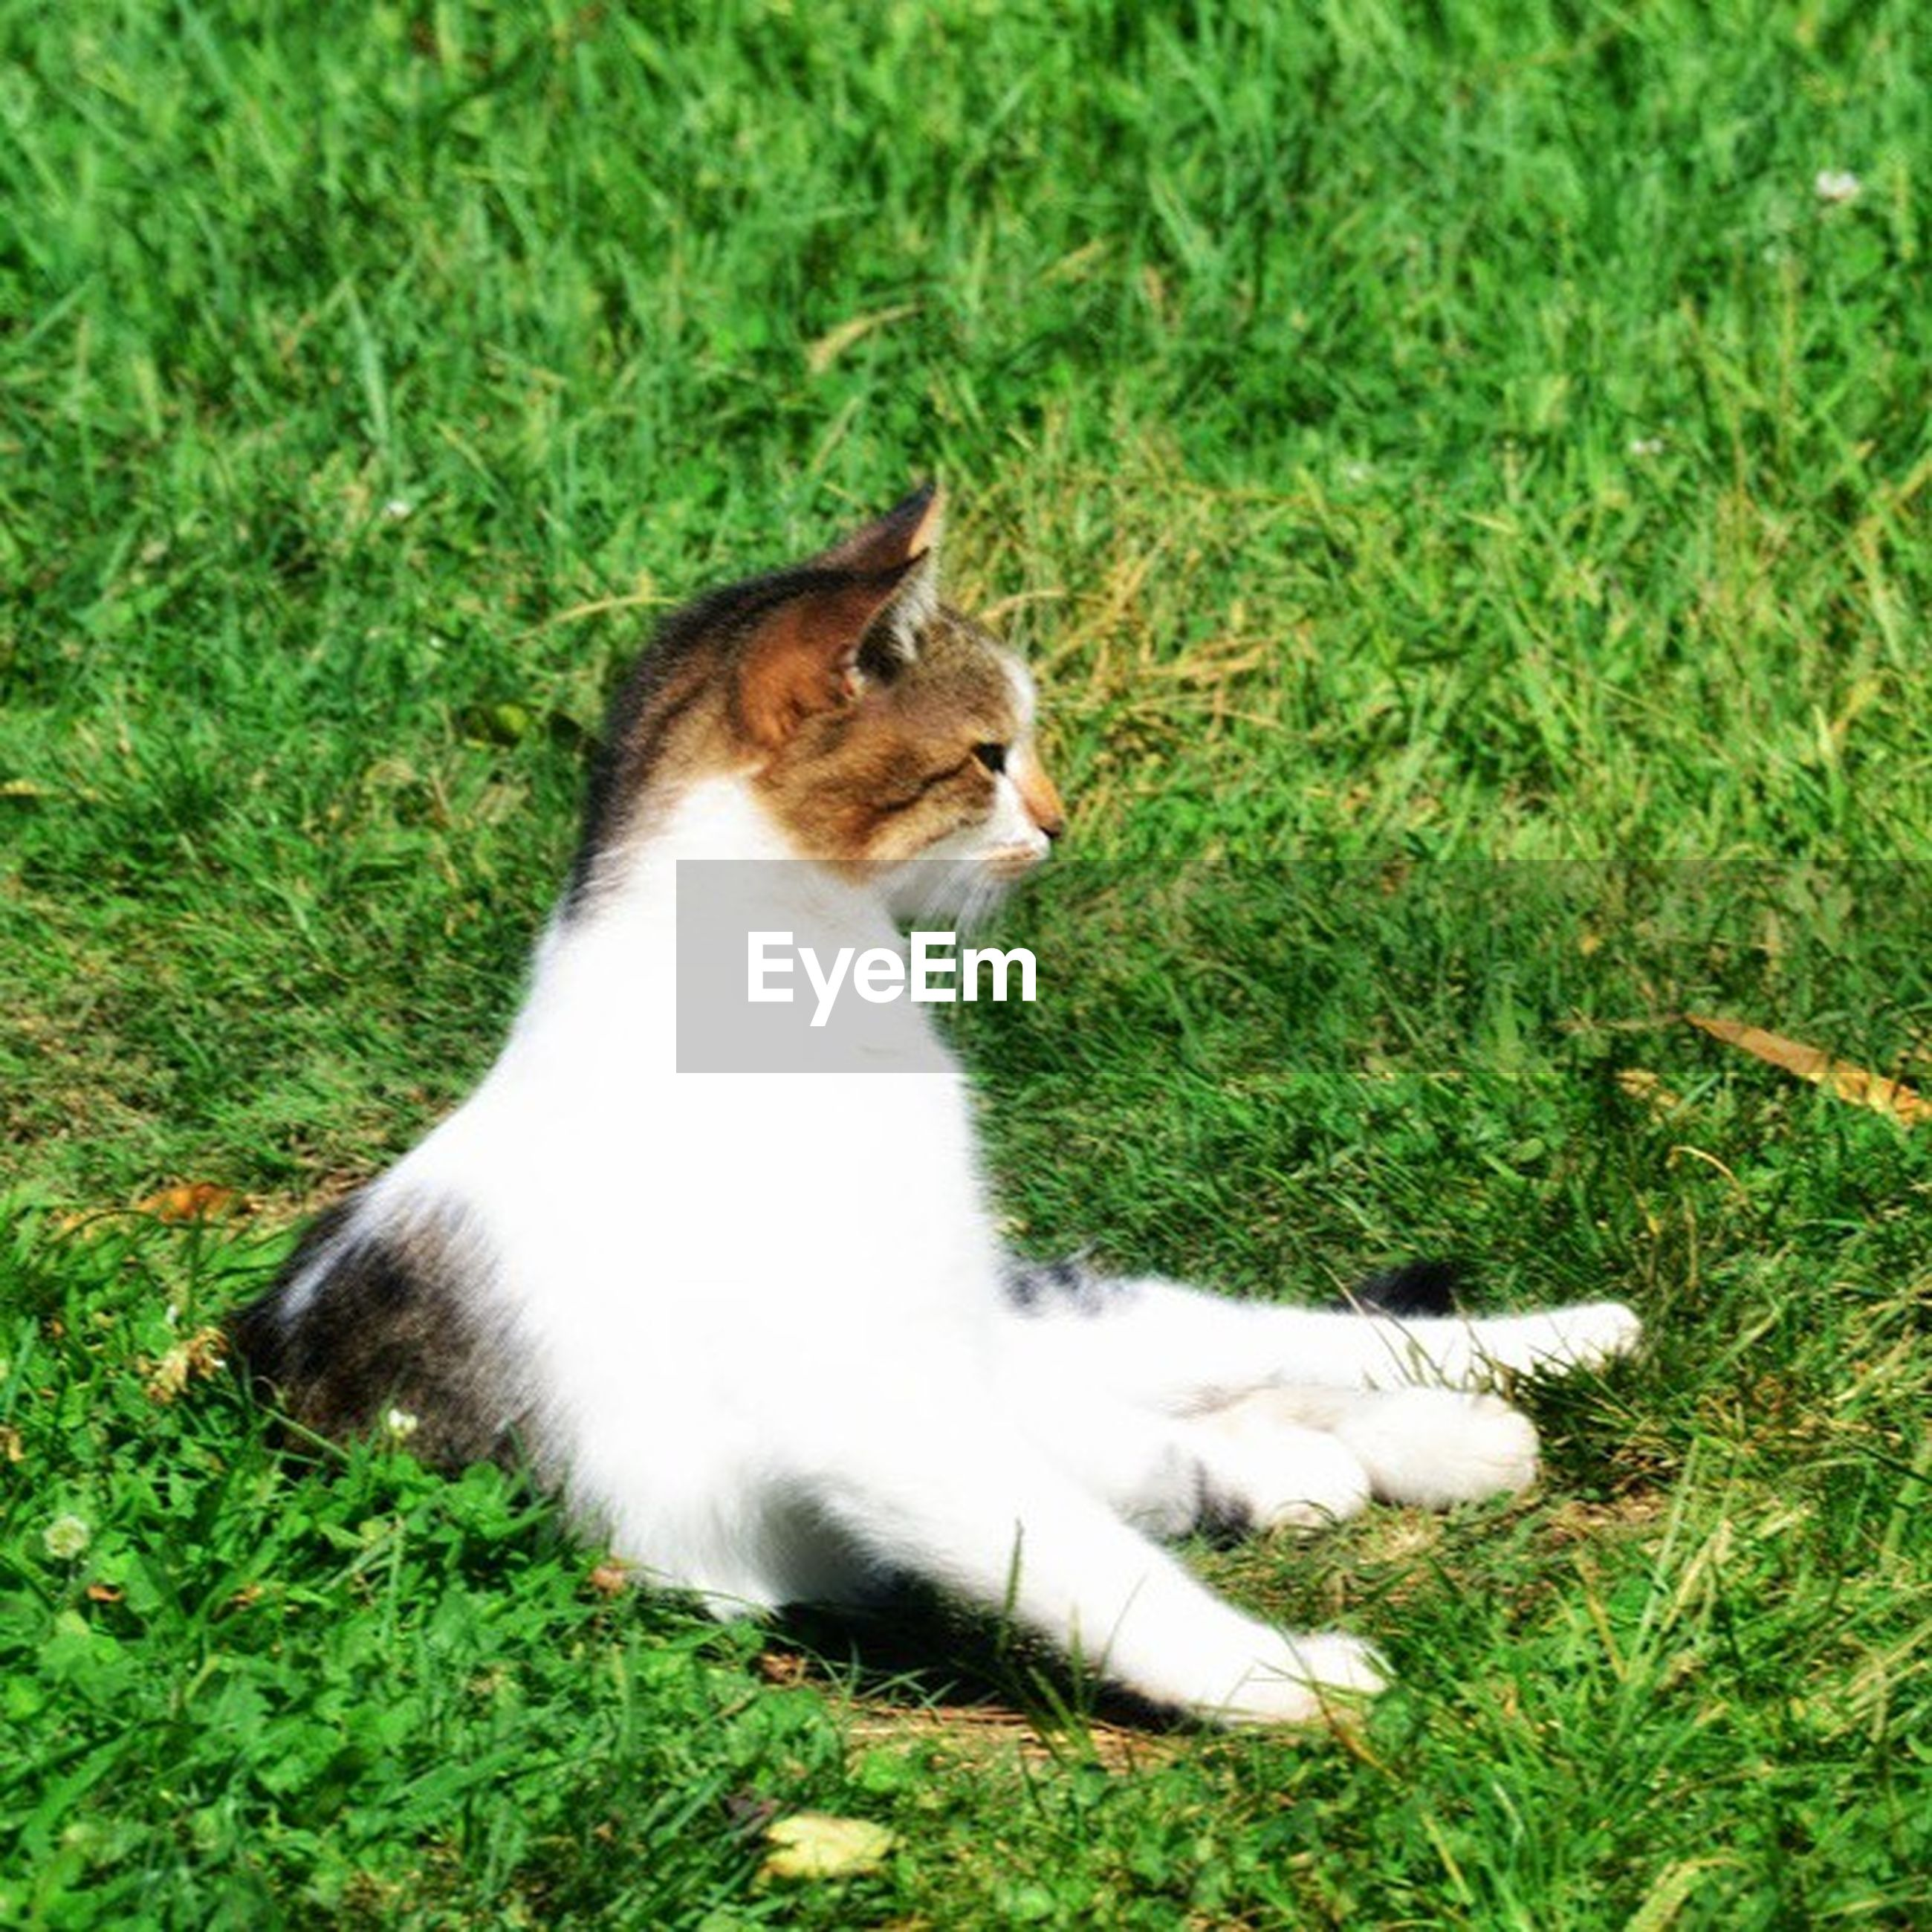 pets, domestic animals, animal themes, one animal, domestic cat, mammal, cat, feline, grass, sitting, relaxation, field, whisker, green color, plant, grassy, alertness, nature, looking away, full length